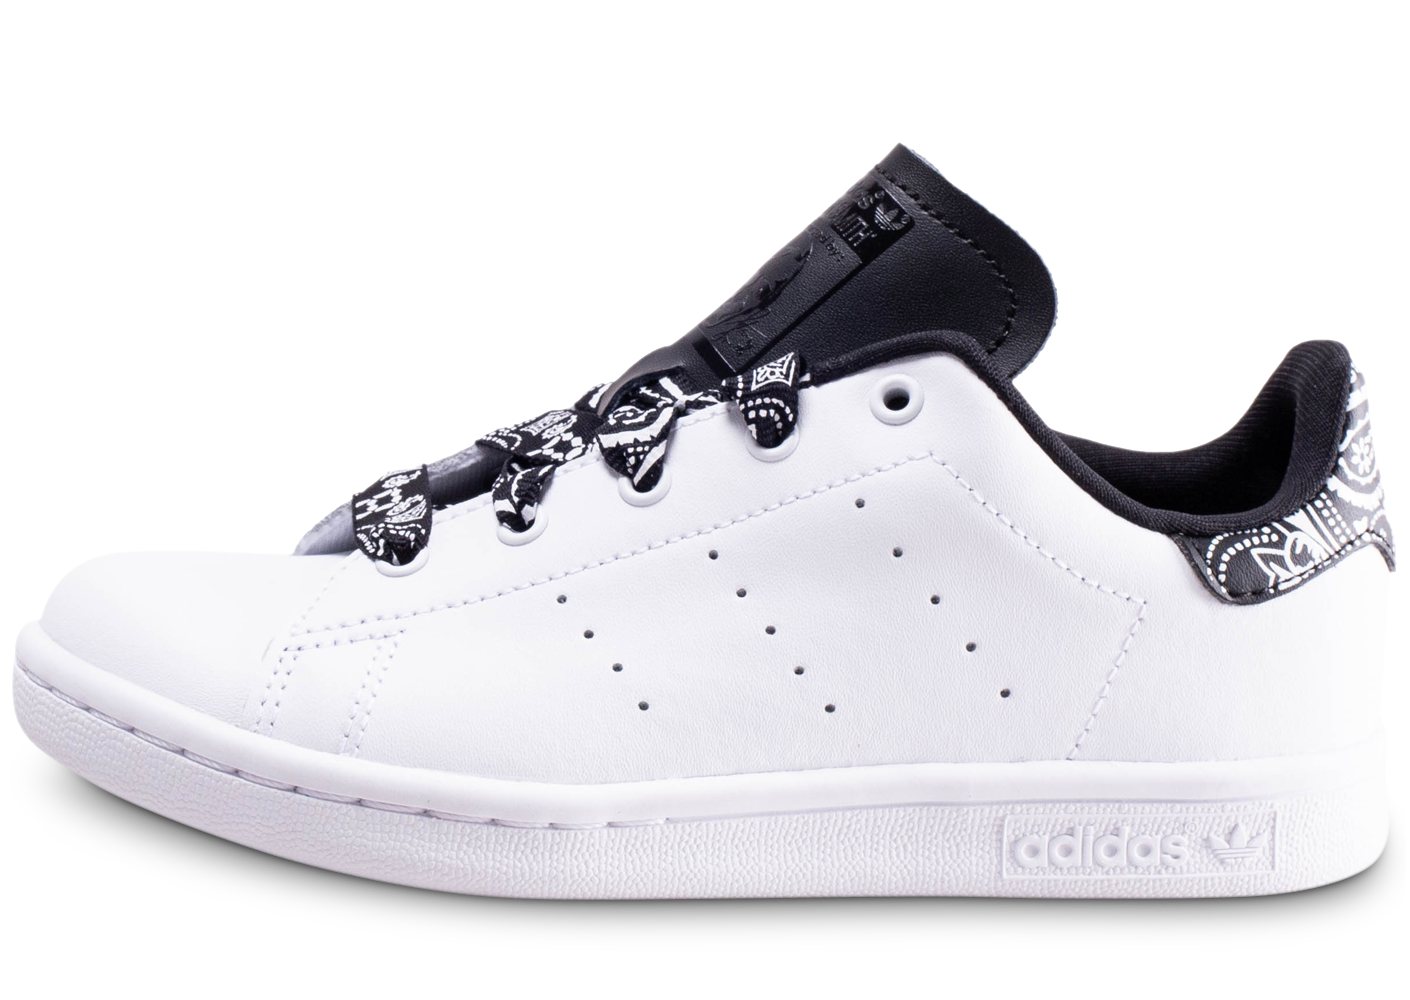 revendeur 07c17 95765 adidas stan smith jusqu'à - 63 % - Pureshopping